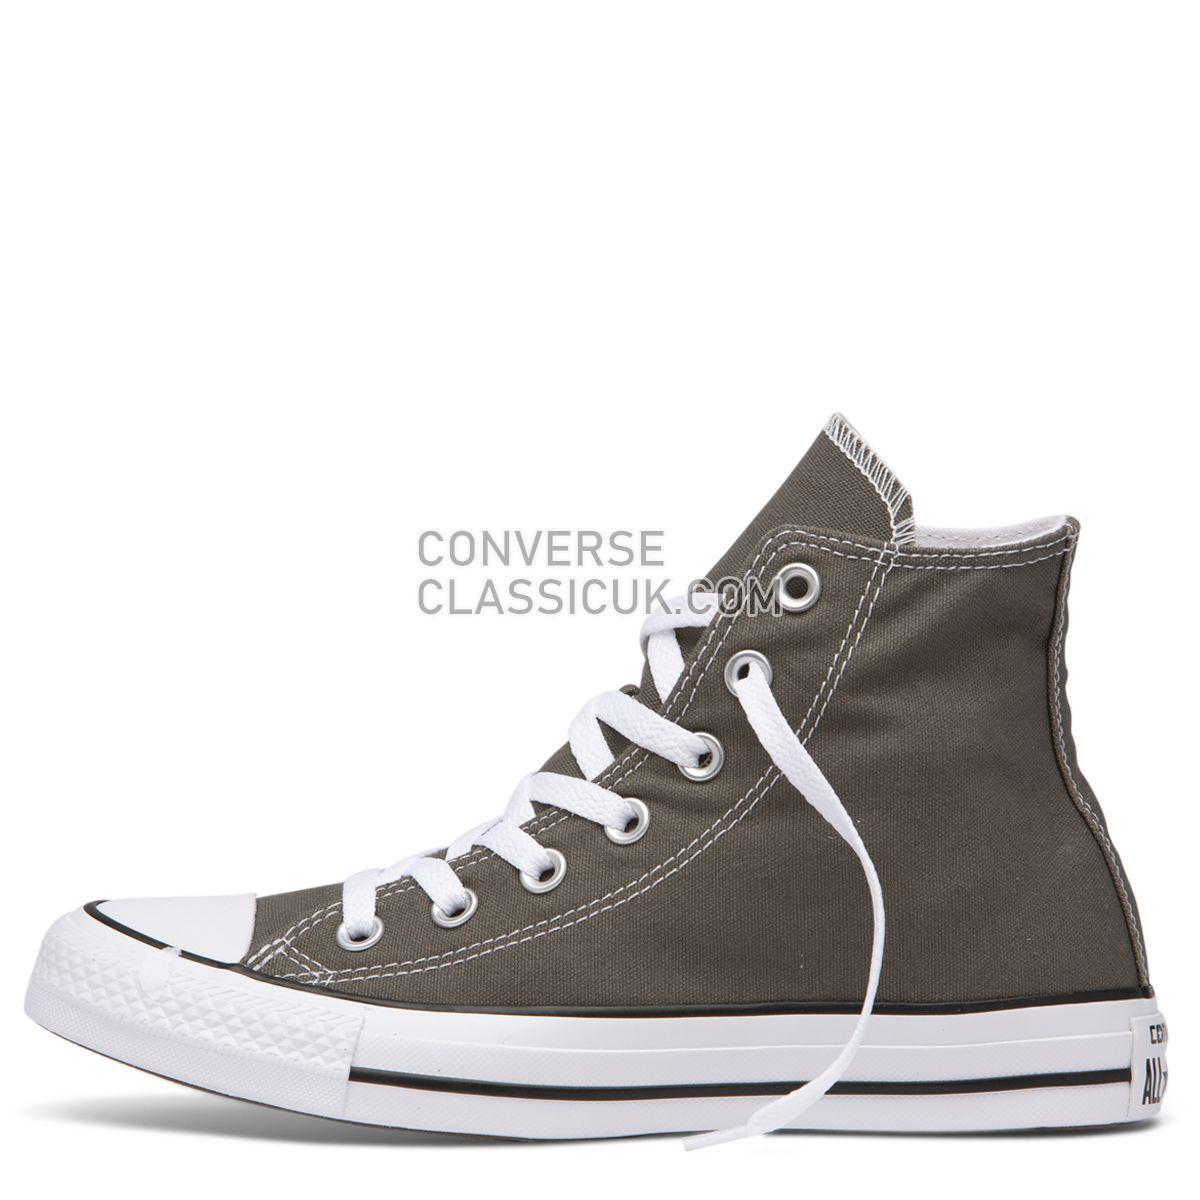 Converse Chuck Taylor All Star Classic Colour High Top Charcoal Mens Womens Unisex 1J793 Charcoal Shoes